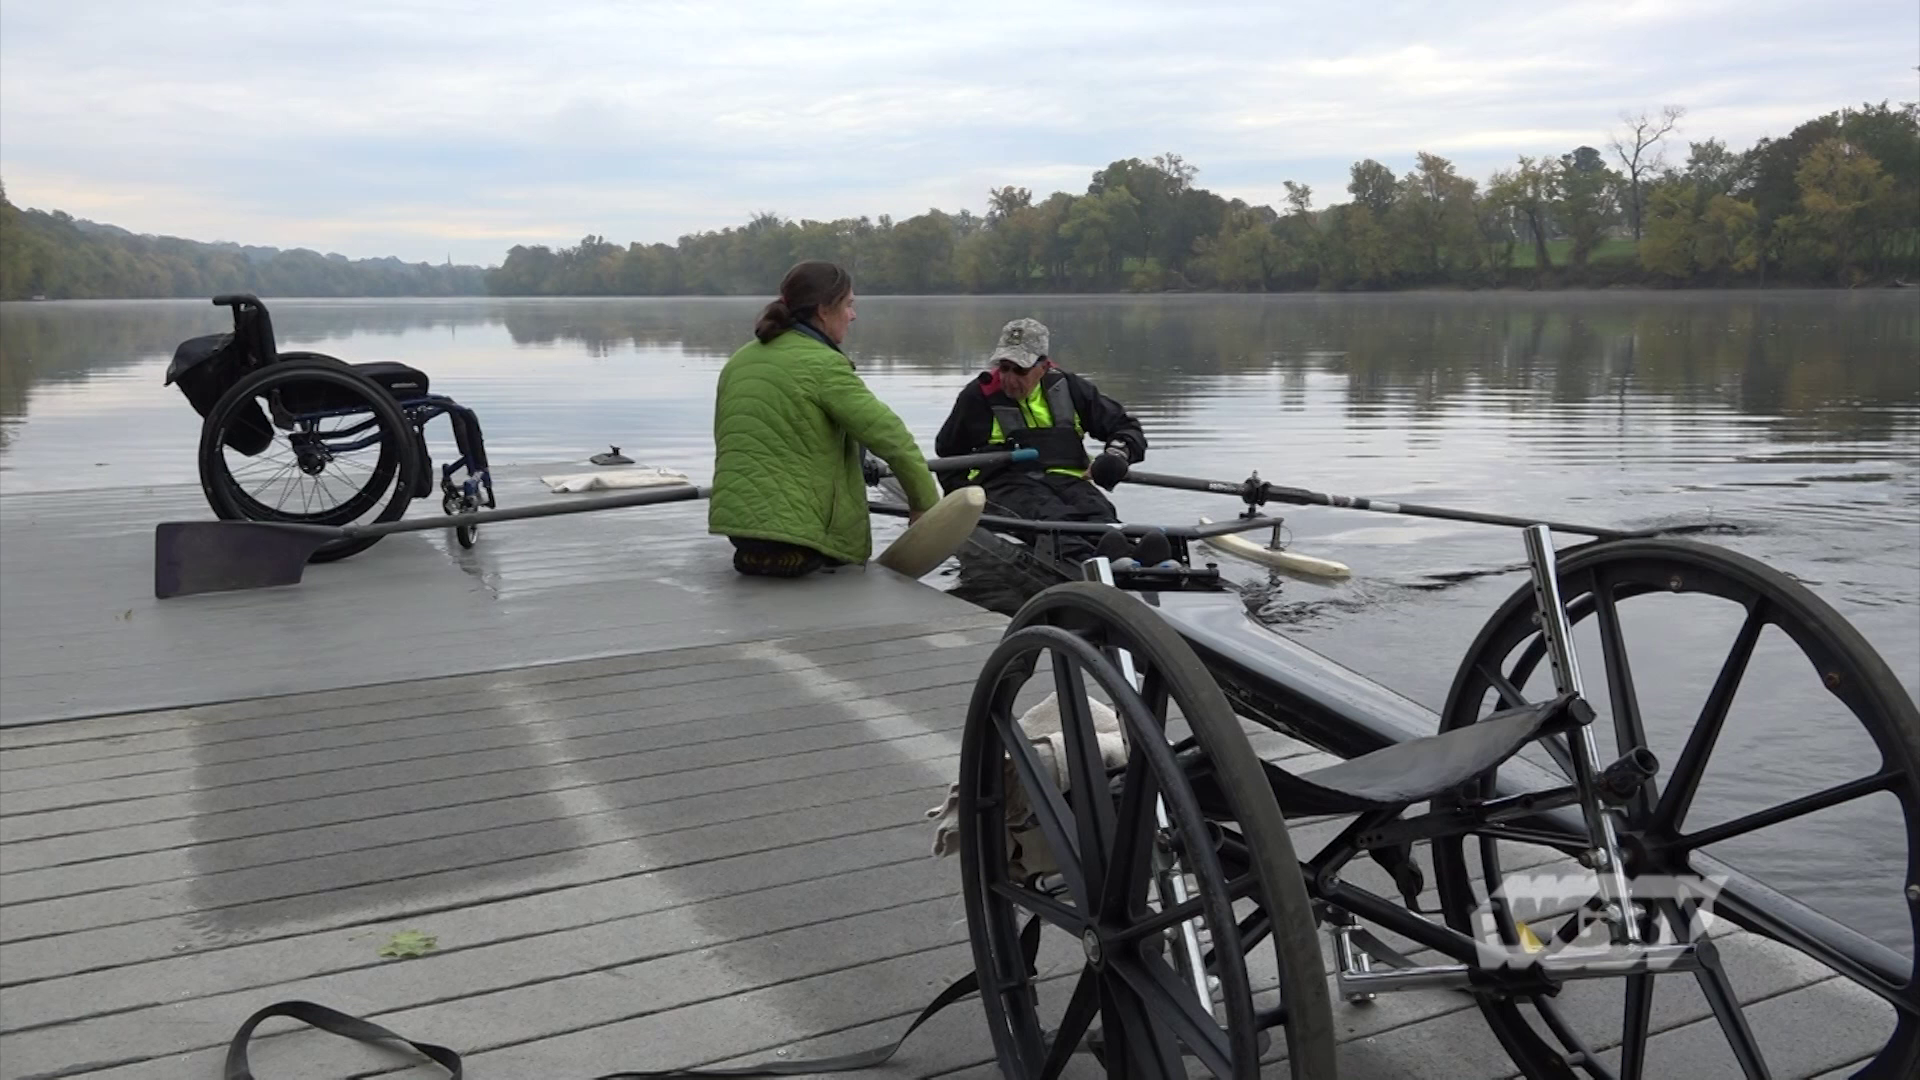 Head to the banks of the Connecticut River where Holyoke Rows founder Stephanie Moore offers an adapative rowing program for people with disabilities.